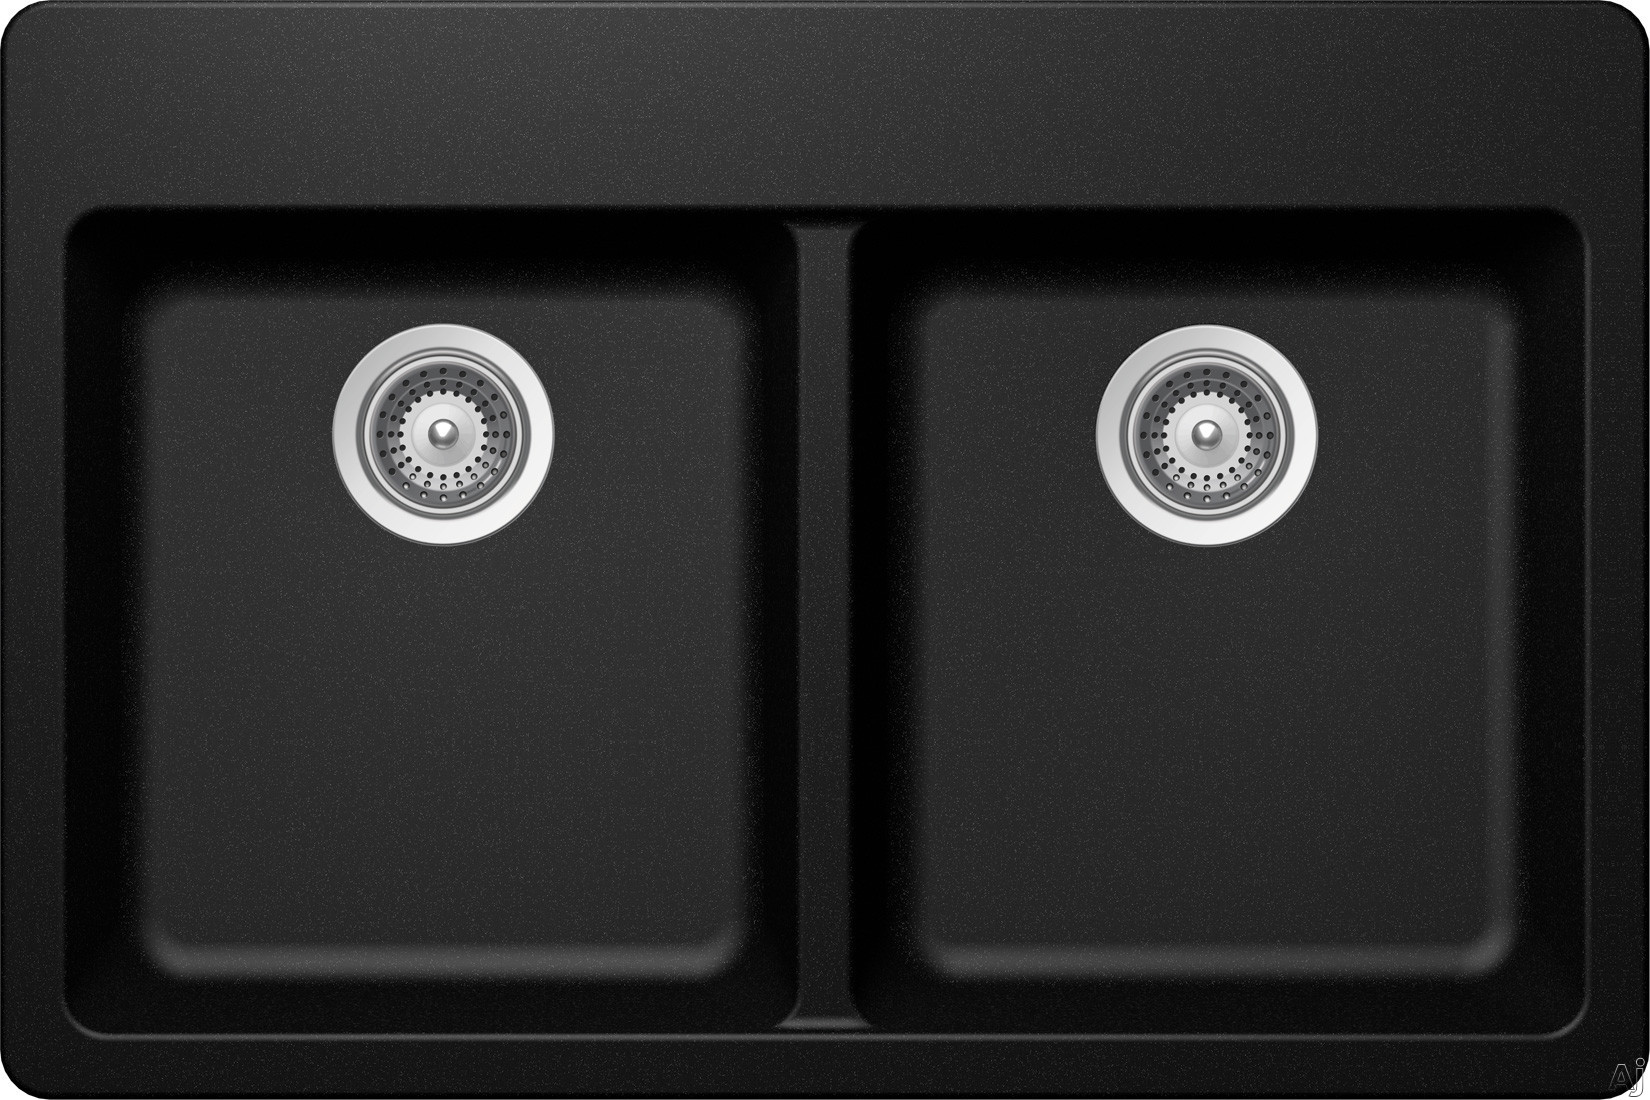 SCHOCK Alive Cristadur Smooth ALIN200TCD 33 Inch Drop In Kitchen Sink with 9 3 8 Inch Bowl Depth Two Equal Bowls Granite Construction ProHygienic21 Anti Microbial Surface and Rear Set Drains